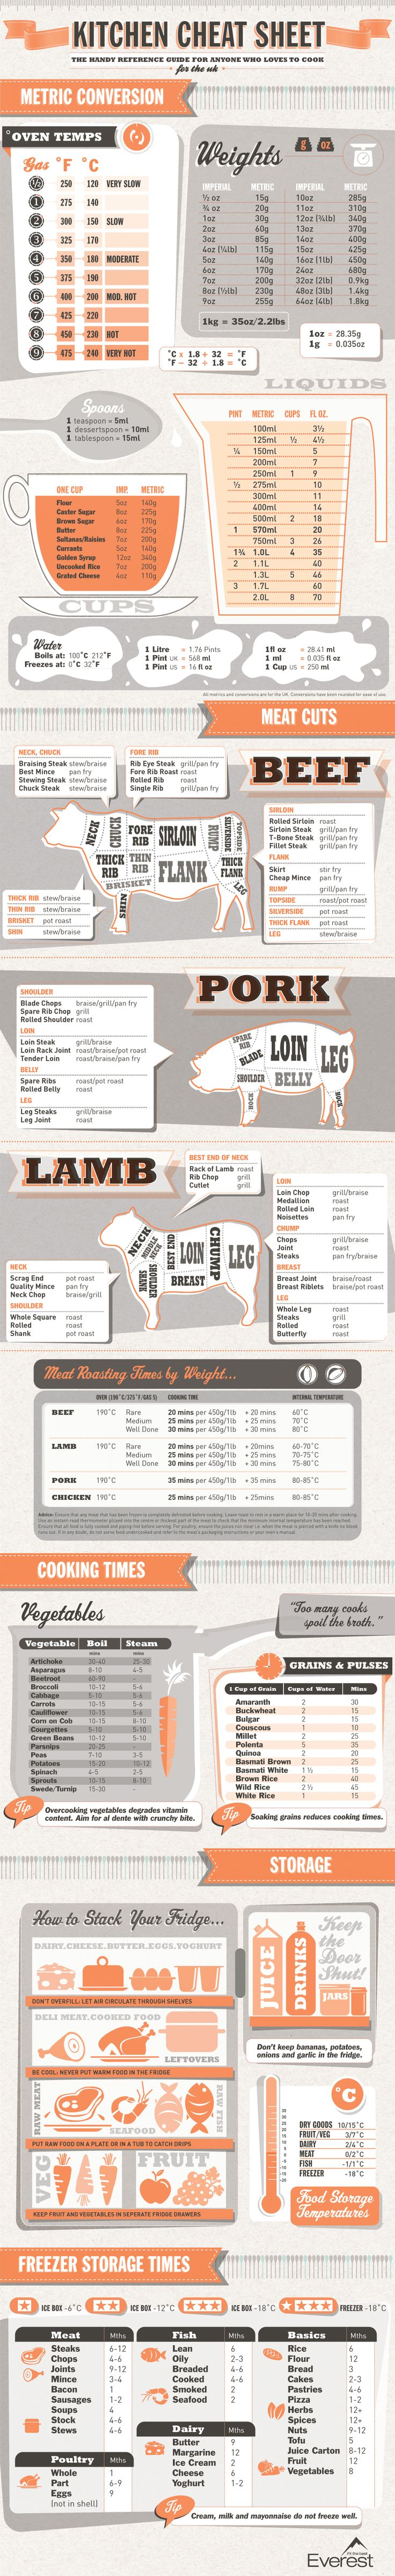 I love this cheat sheet because I can never remember how long I need to cook various meats and at what temp.